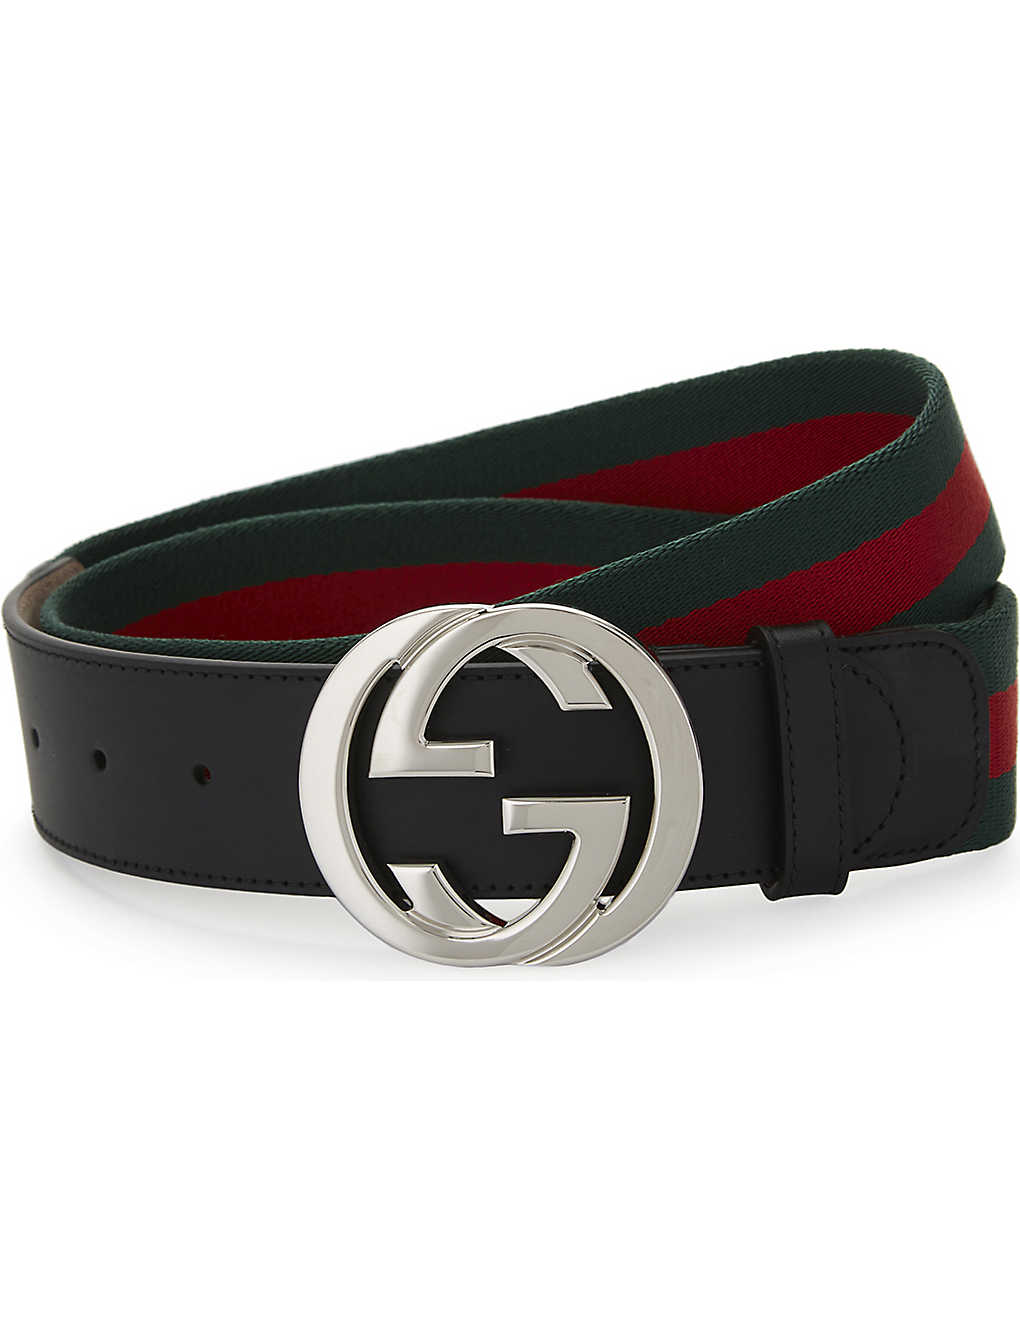 e77c9be3b GUCCI - Web stripe belt | Selfridges.com